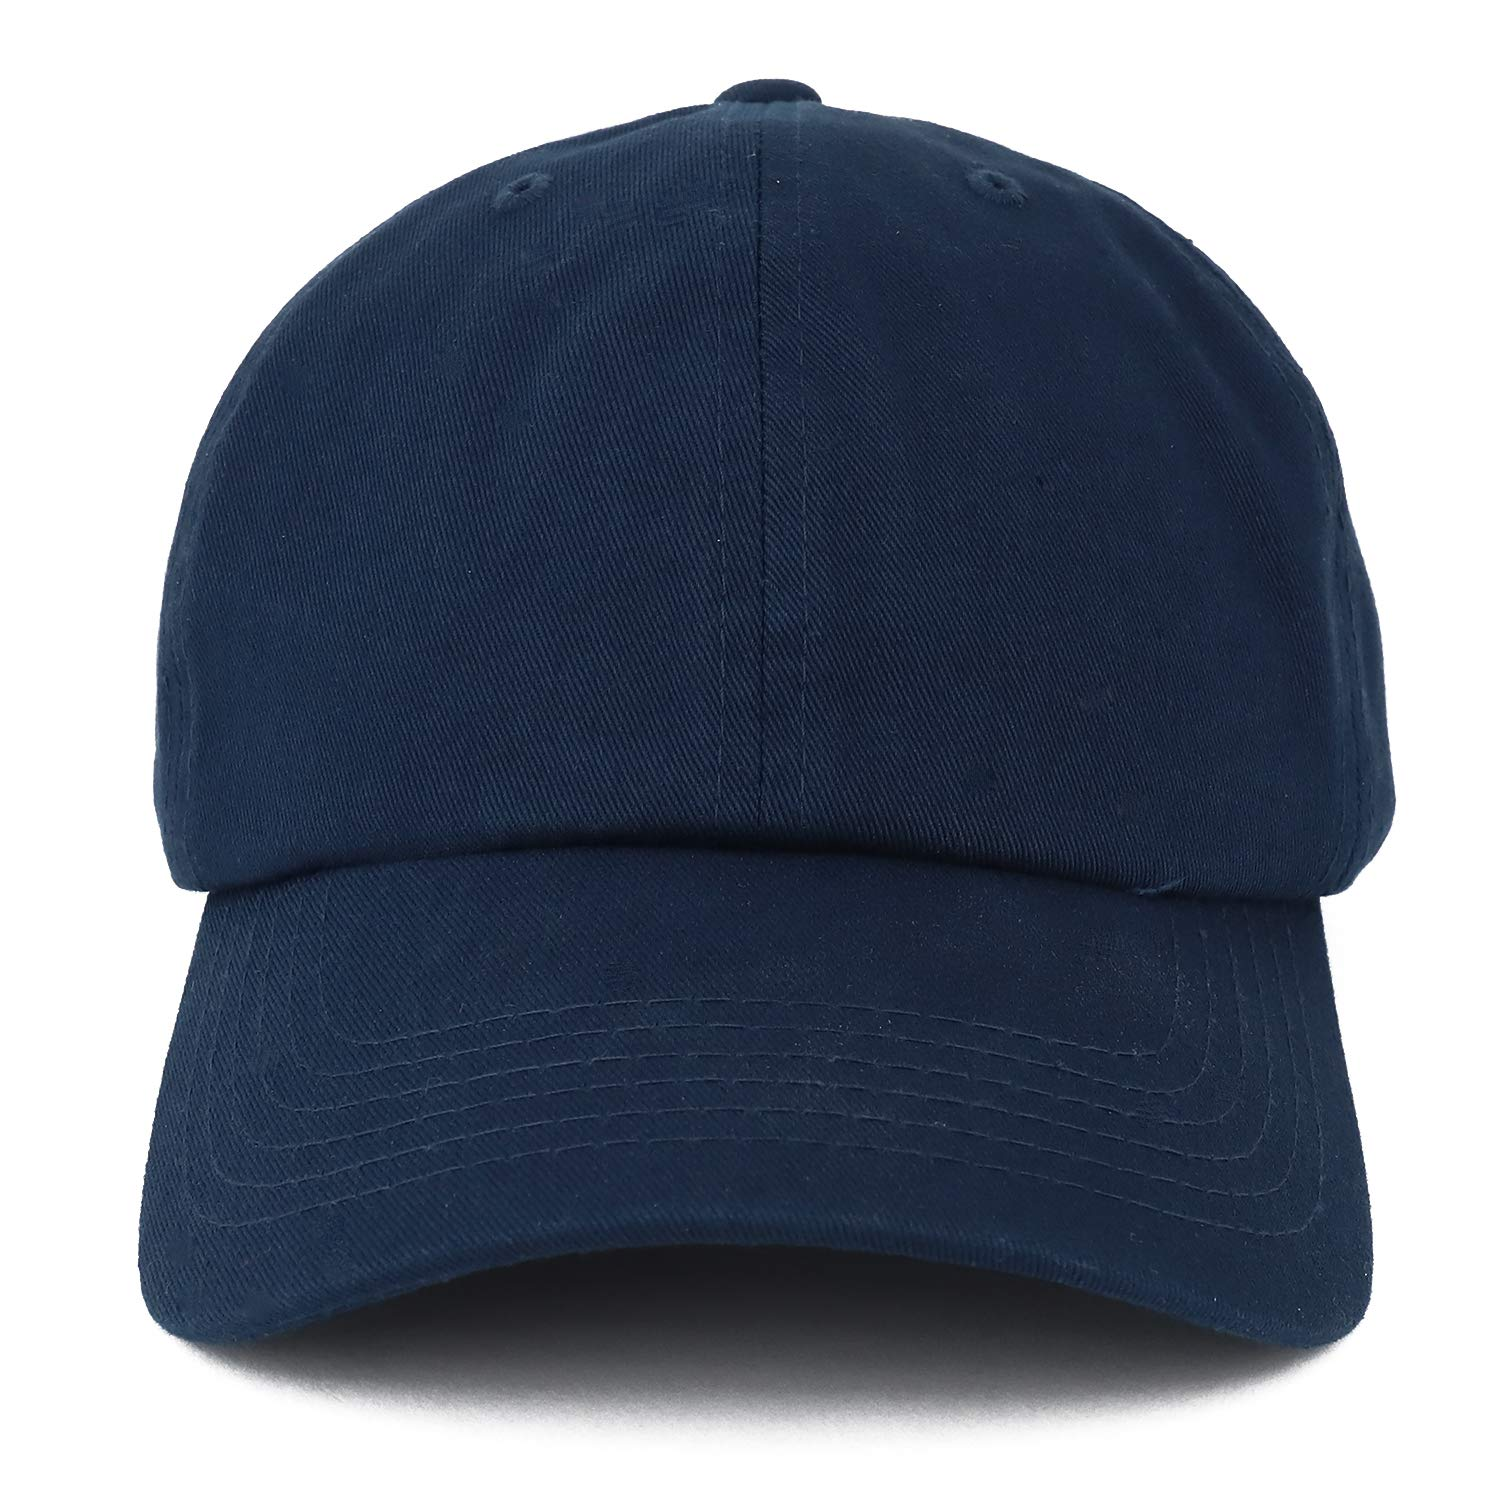 1e3585ff Trendy Apparel Shop Oversize XXL Plain Unstructured Soft Crown Cotton Dad  Hat